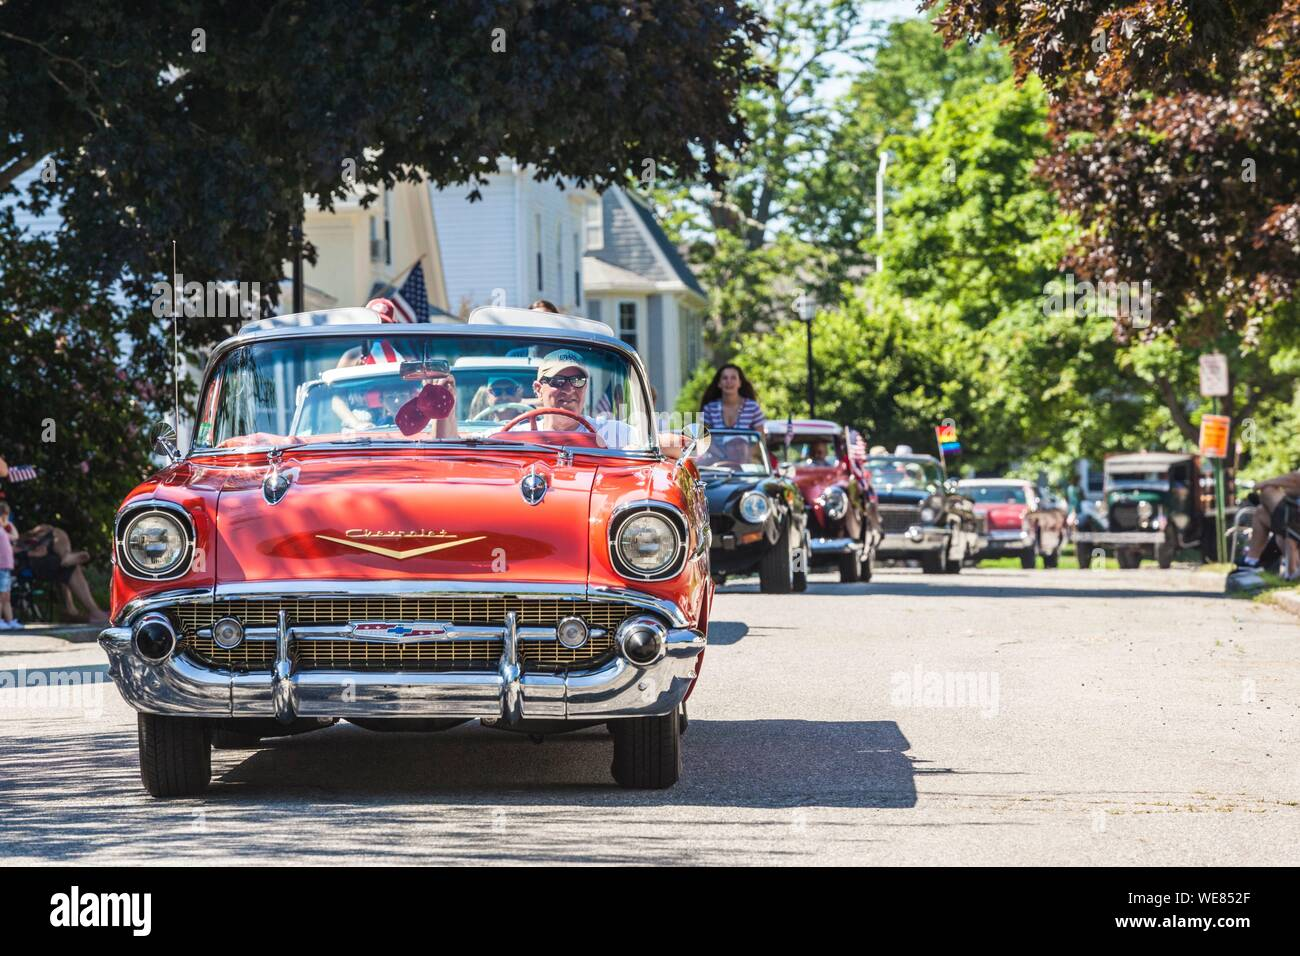 United States, New England, Massachusetts, Cape Ann, Gloucester, Fourth of July Parade, antique car Stock Photo